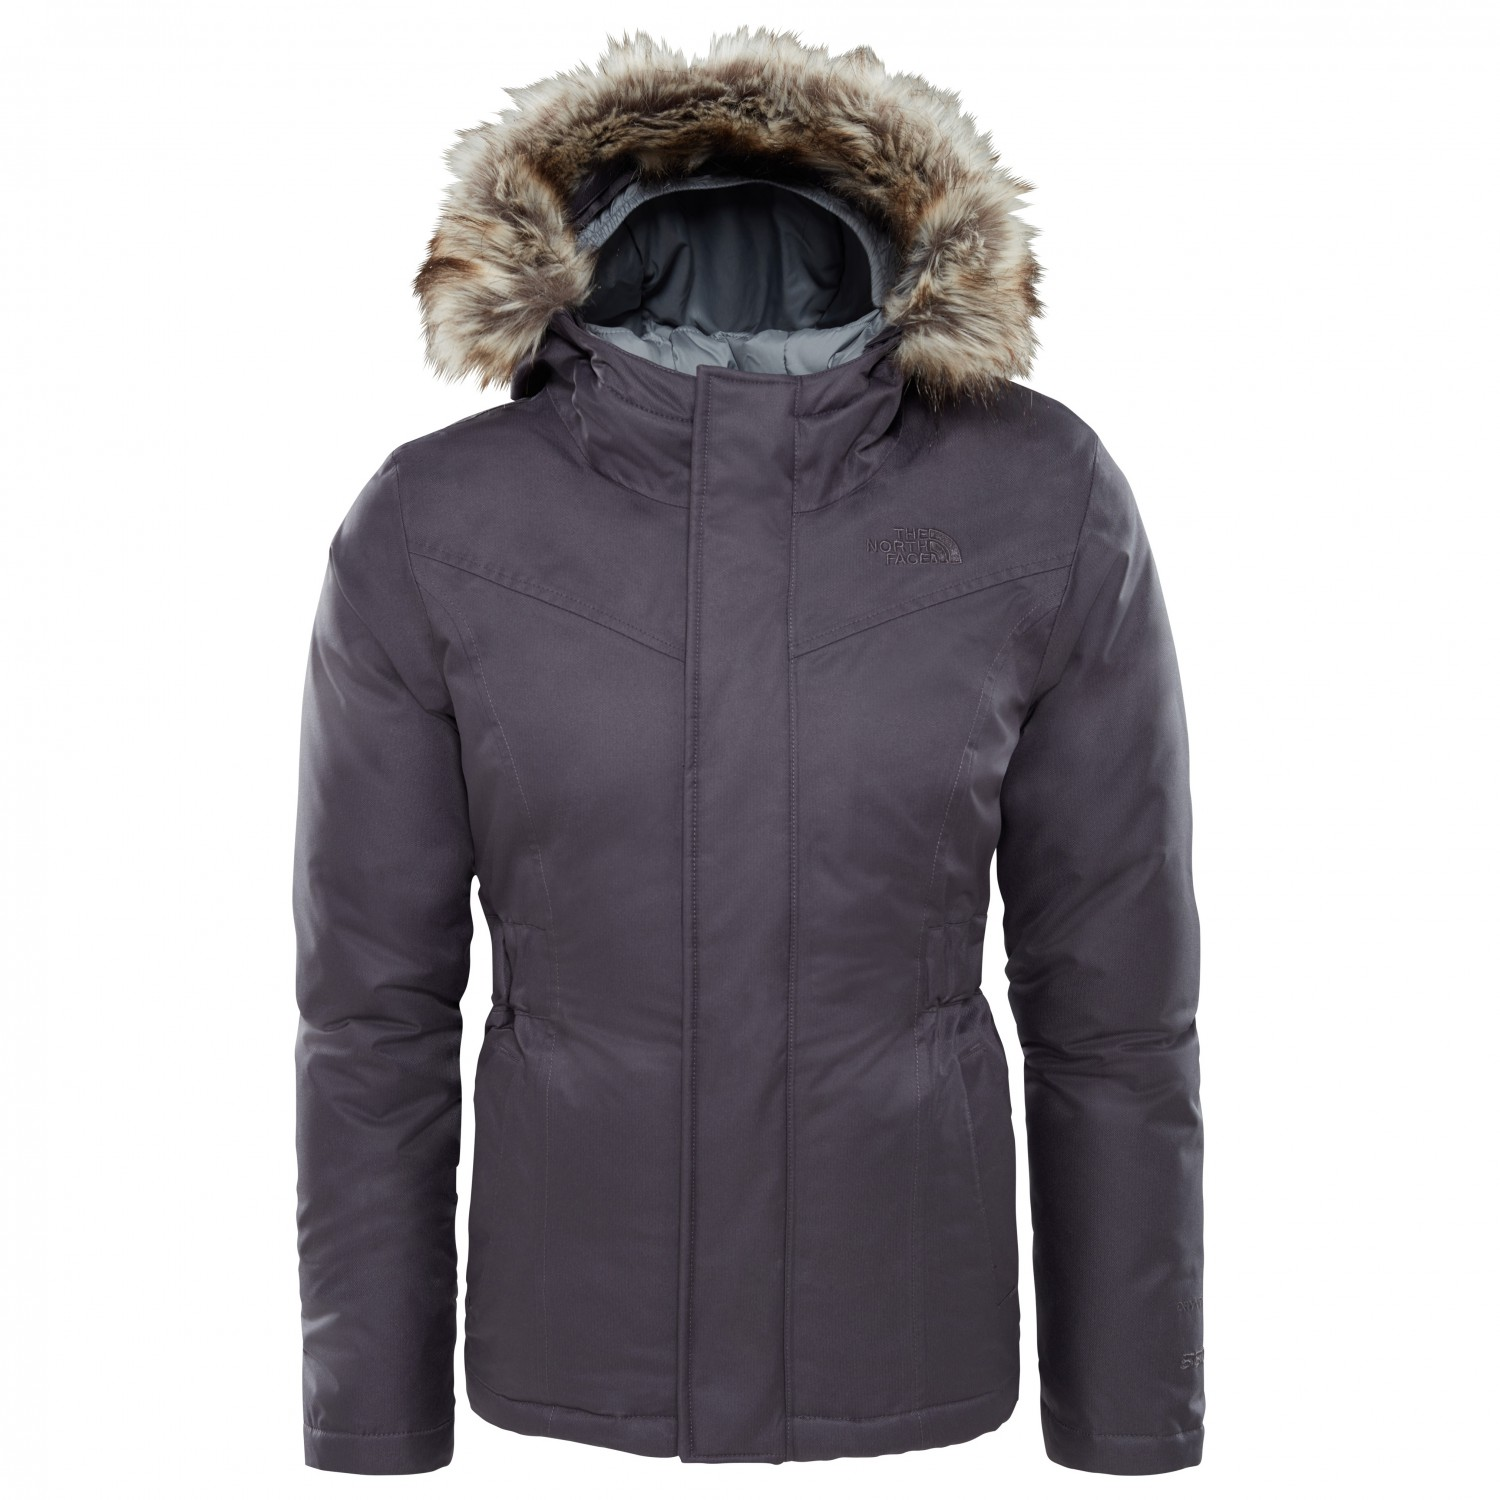 09dee8815 The North Face Greenland Down Parka - Down jacket Girls | Buy online ...